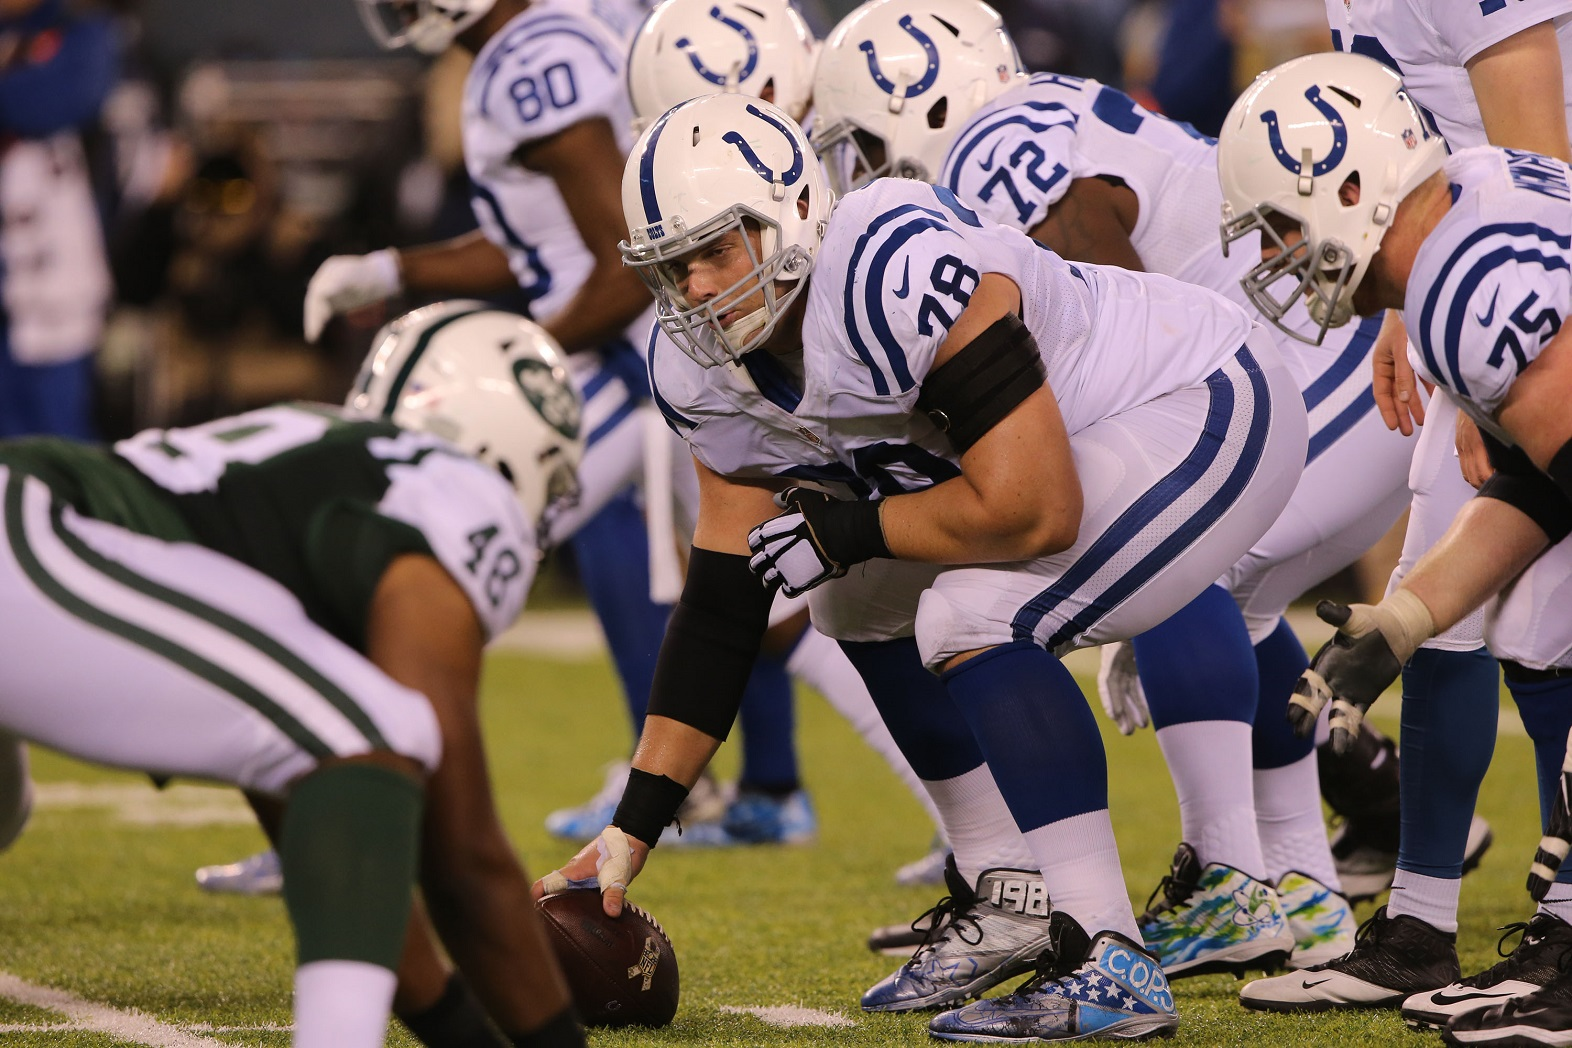 Colts' Center Ryan Kelly To Miss Start Of Regular Season